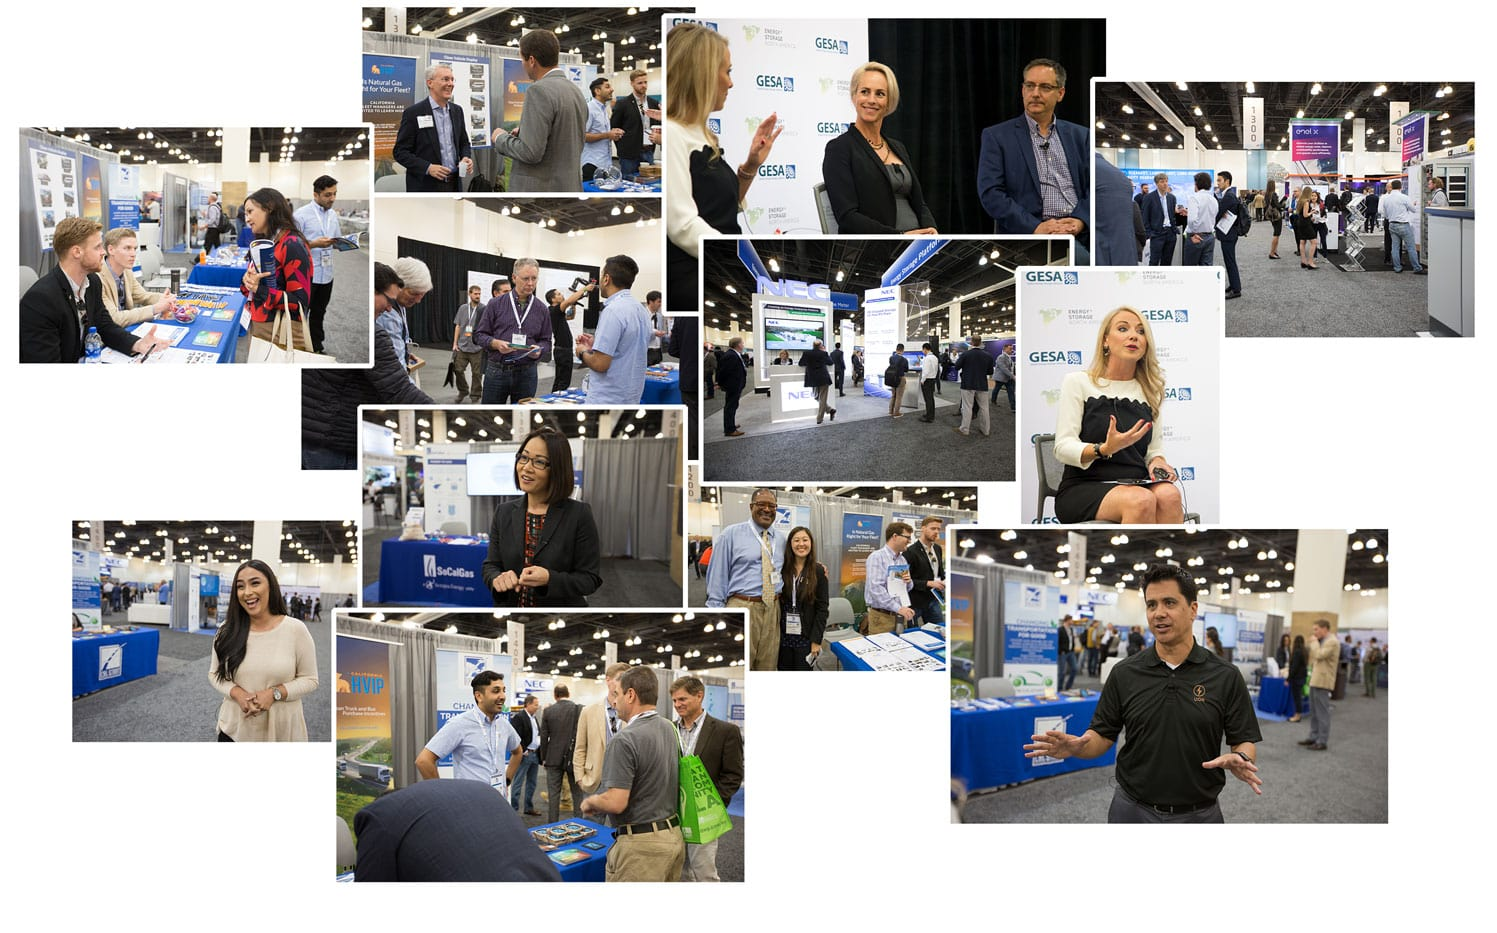 Collage of images of people at a trade show